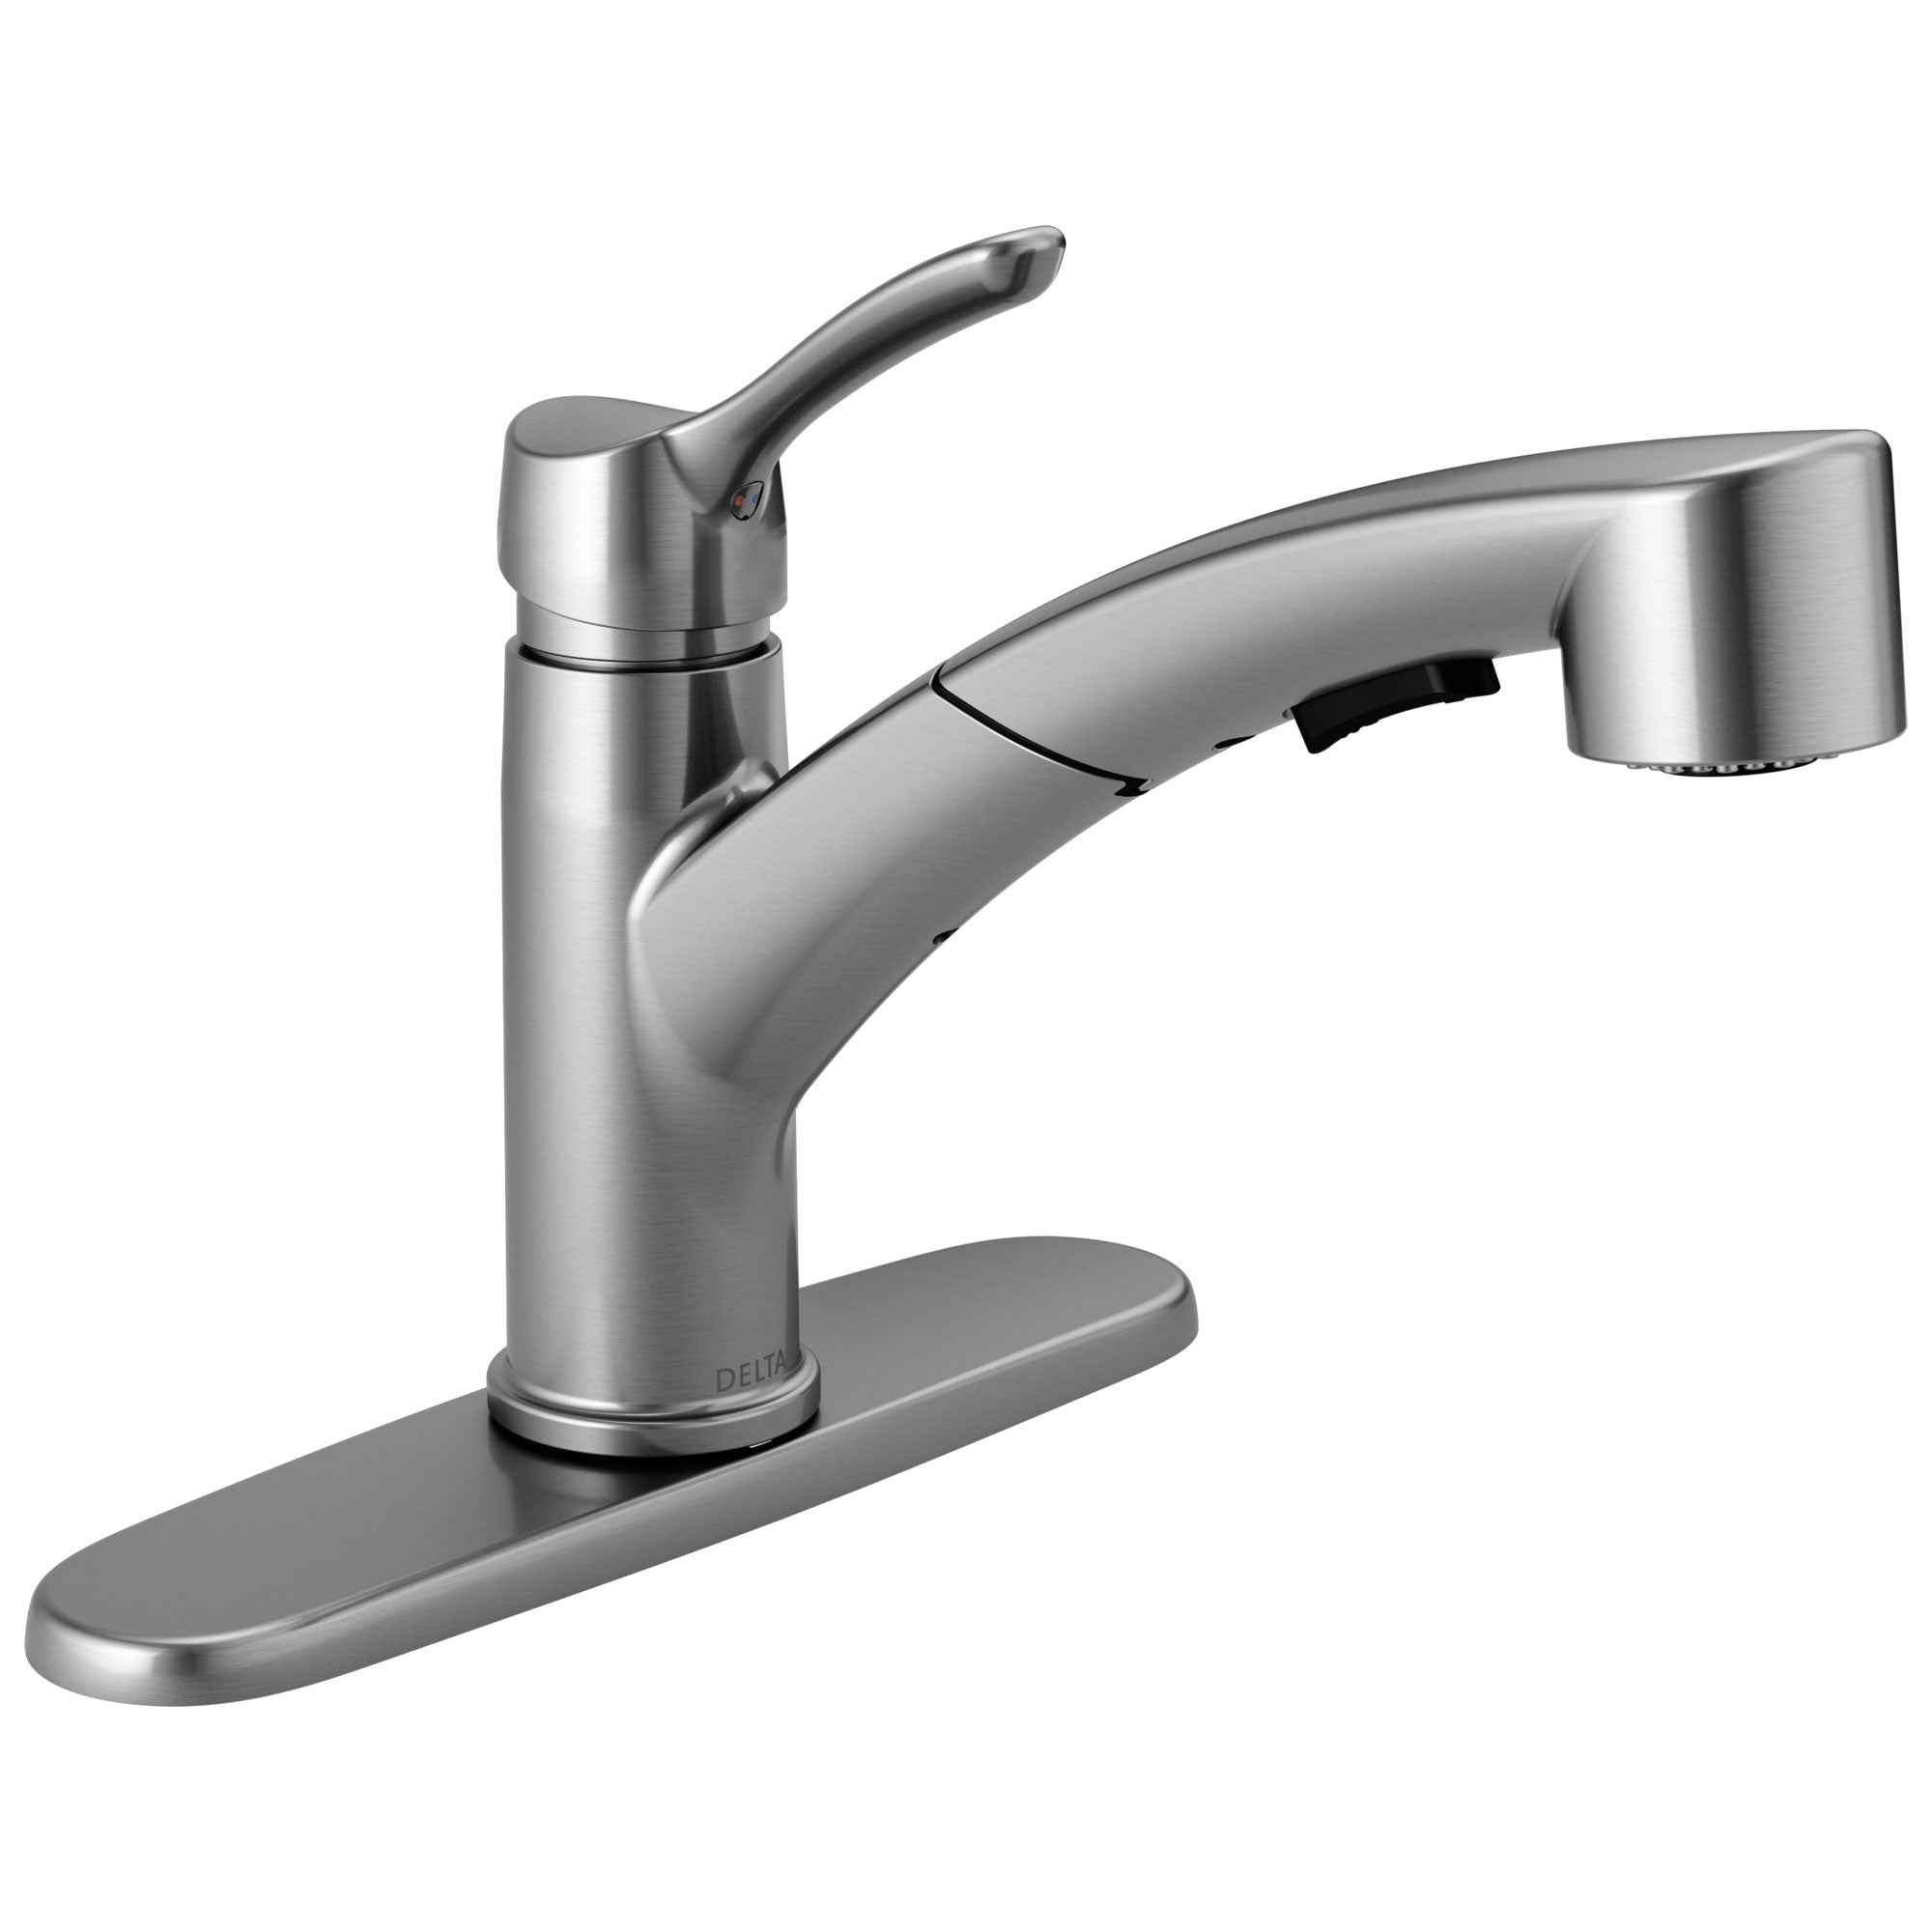 Delta Collins Collection Arctic Stainless Steel Finish Modern Single Lever Handle Pull-Out Kitchen Sink Faucet D4140ARDST